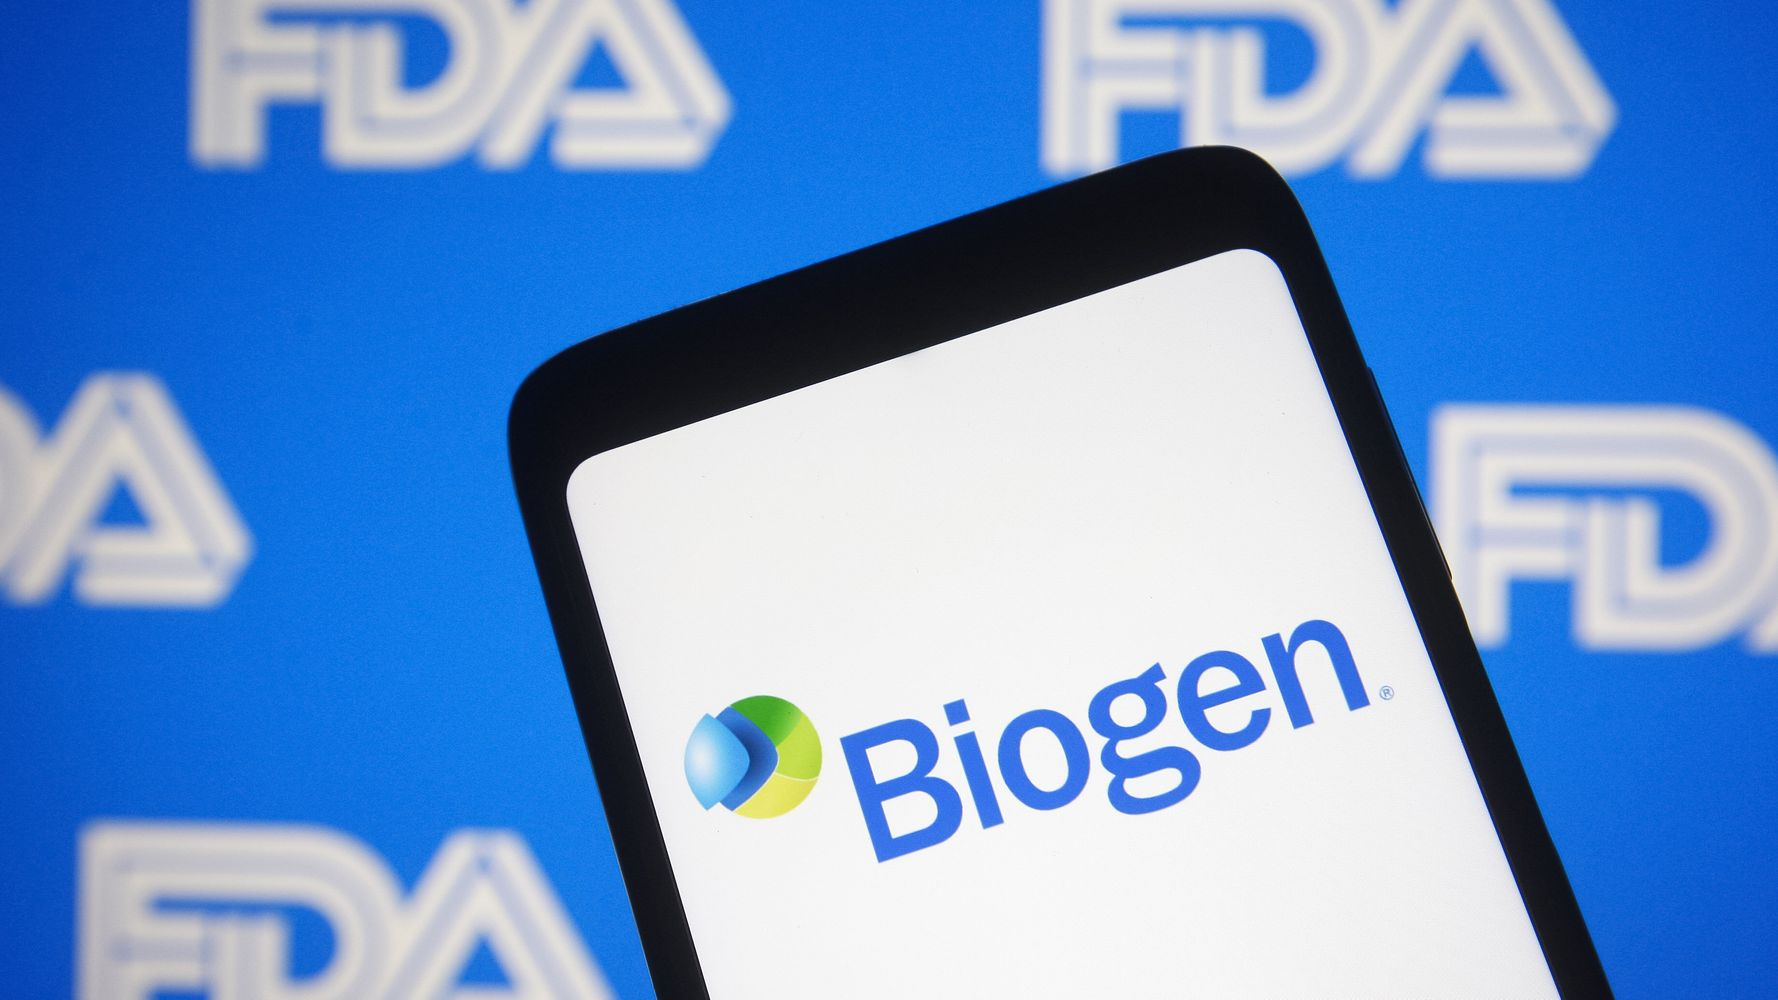 Why The FDA's Approval Of A New Alzheimer's Drug Should Worry You